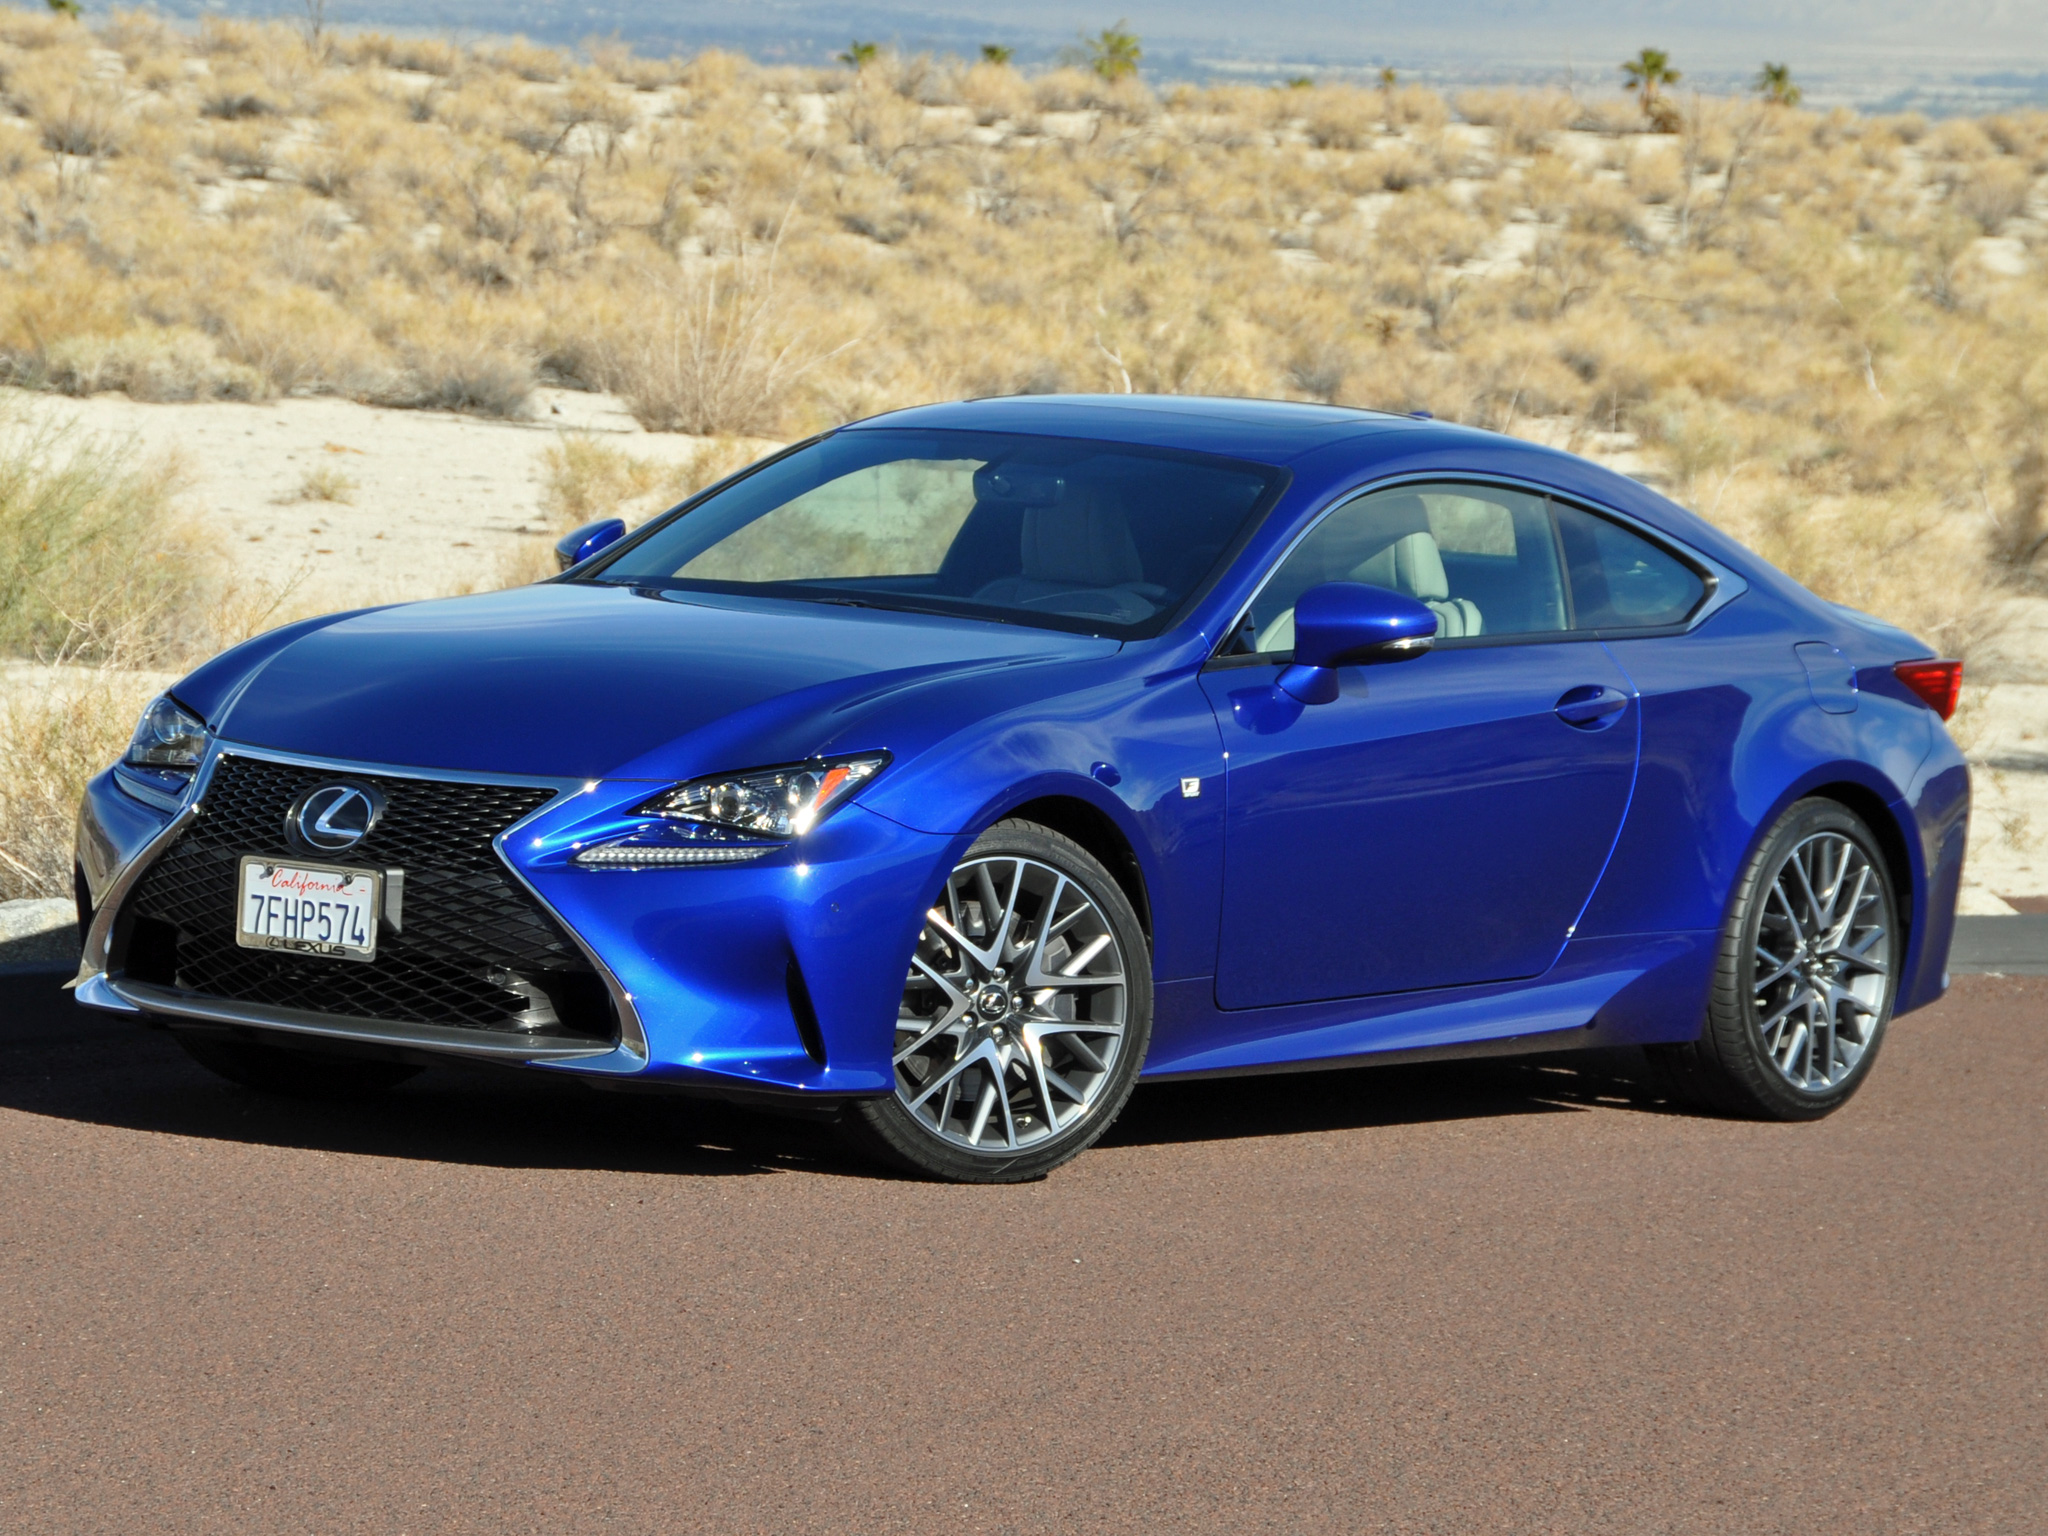 2017 Lexus RC F photo - 1